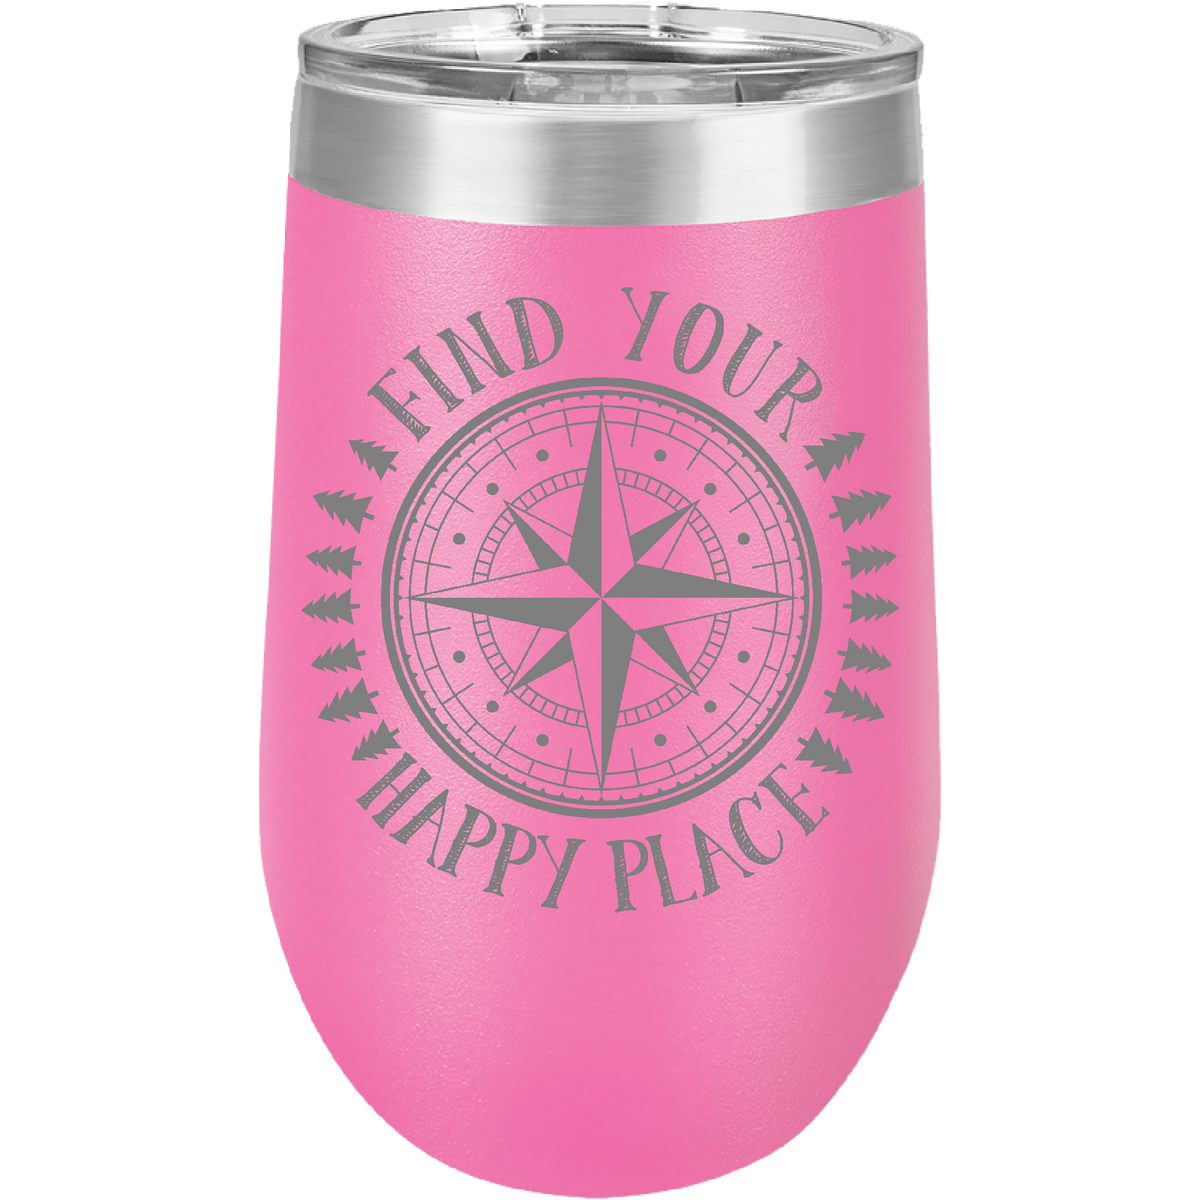 Find Your Happy Place - 16oz. Engraved Stemless Wine Tumbler with Clear Lid